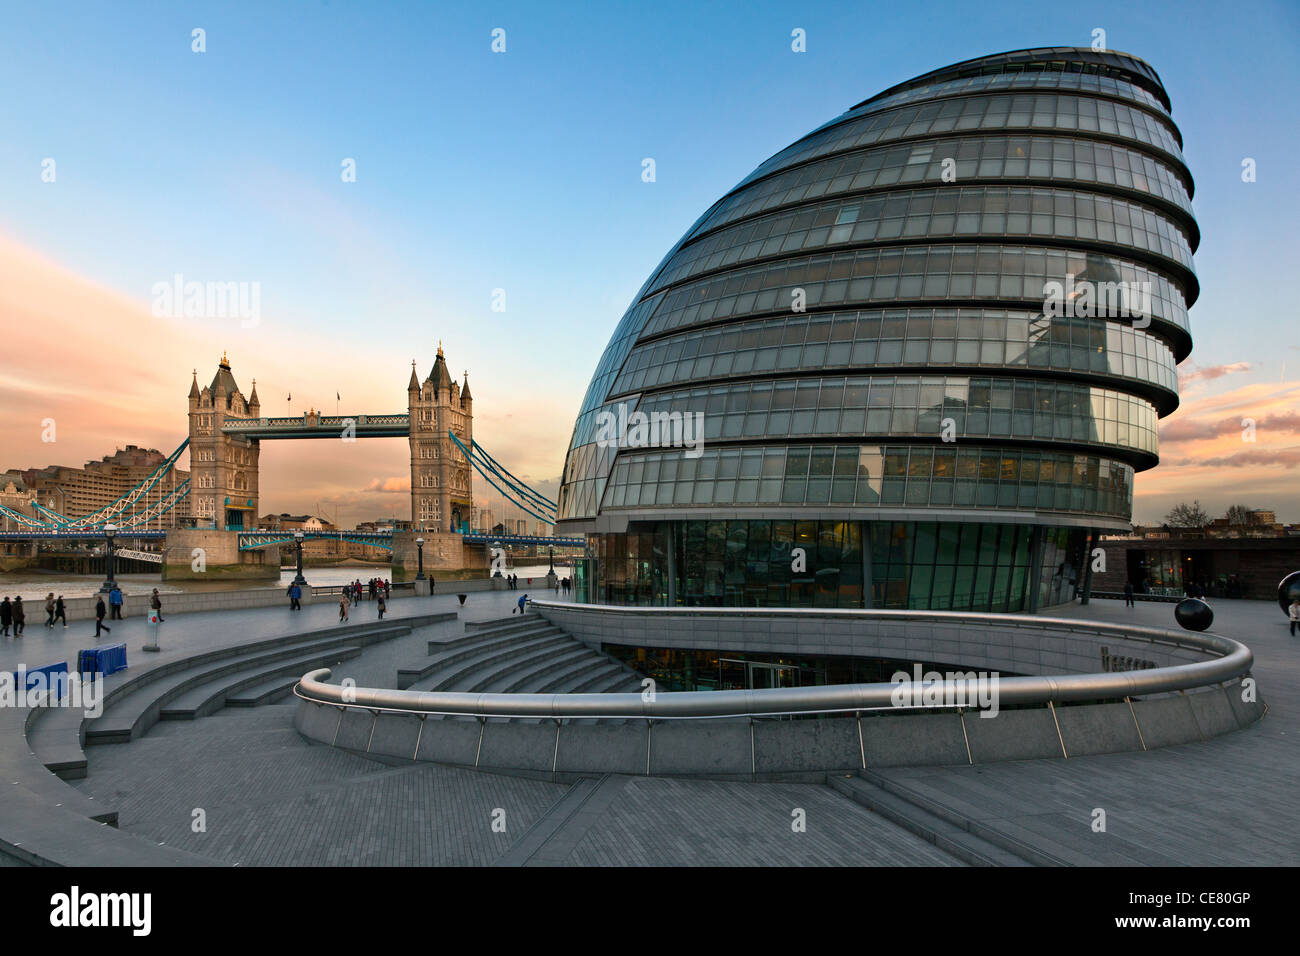 City Hall, headquarters of the Greater London Authority (GLA) and Tower Bridge, London at sunset - Stock Image